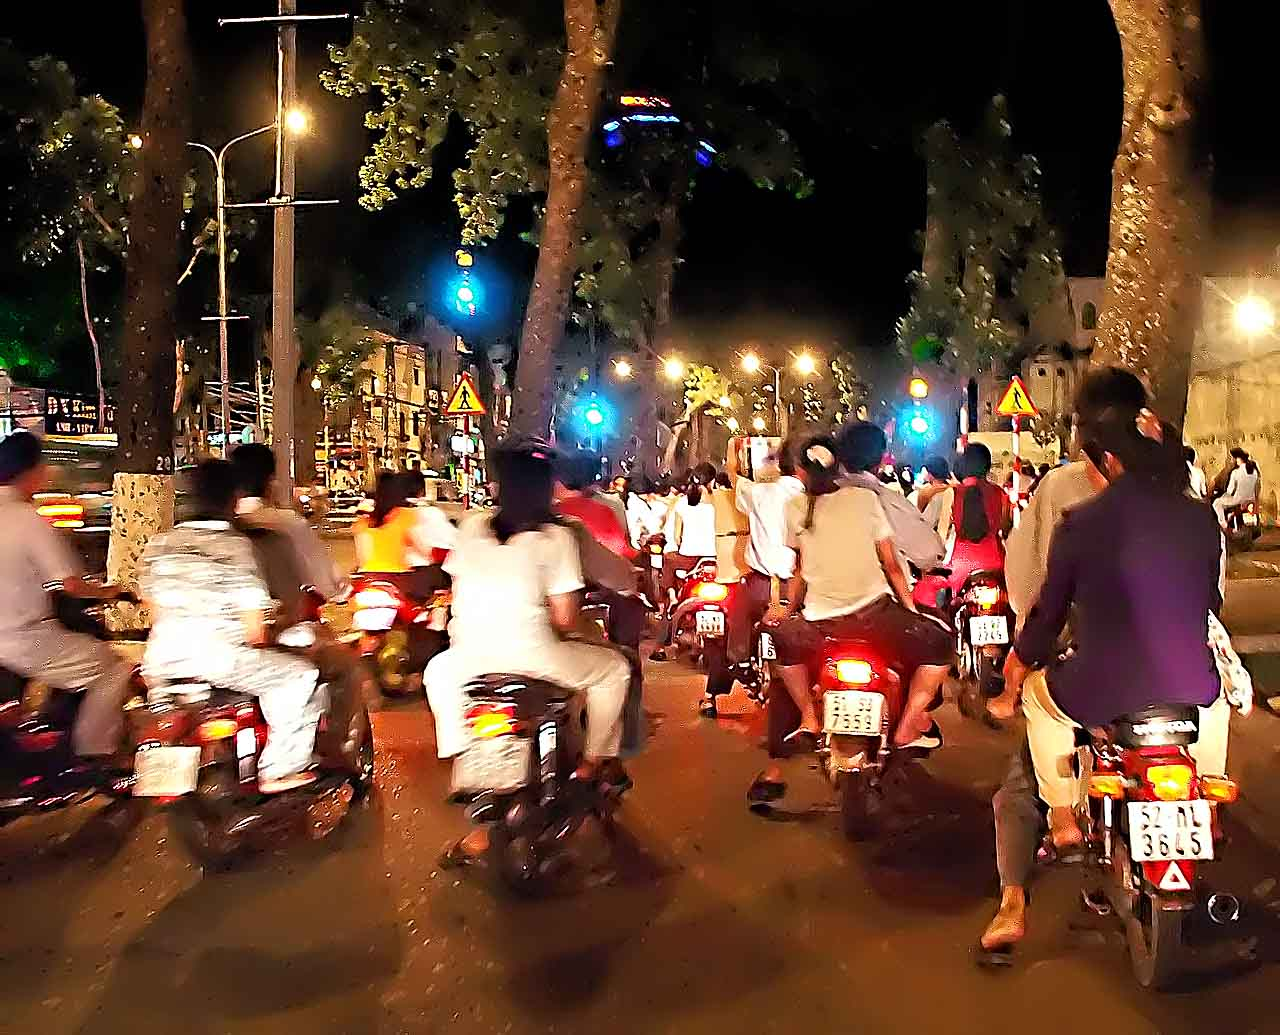 The motorbike brigade on night maneuvers - Siagon